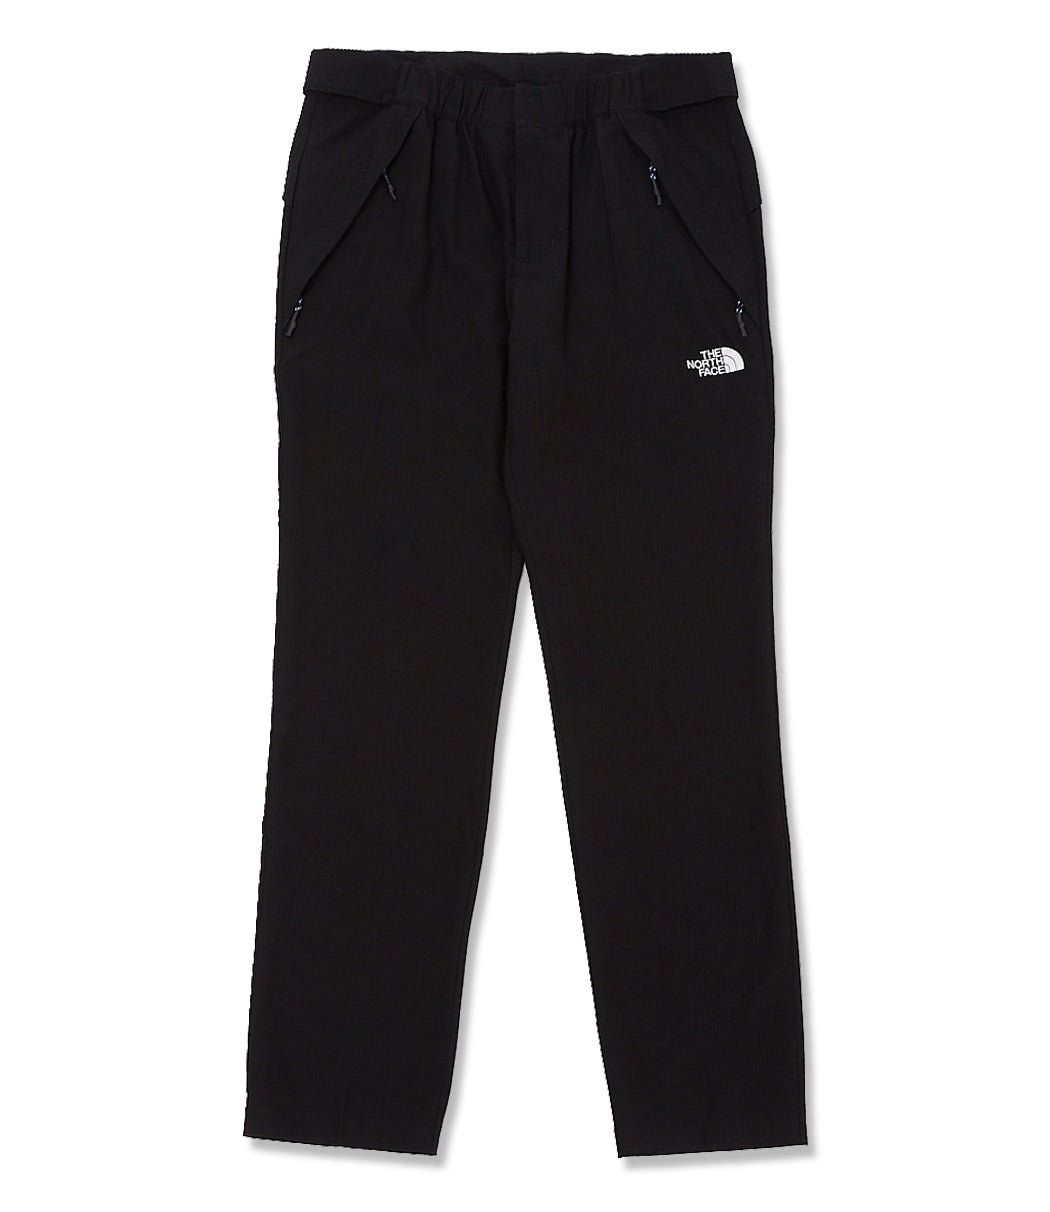 THE NORTH FACE M BLACK SERIES POLY/WOOL RIPSTOP PANT